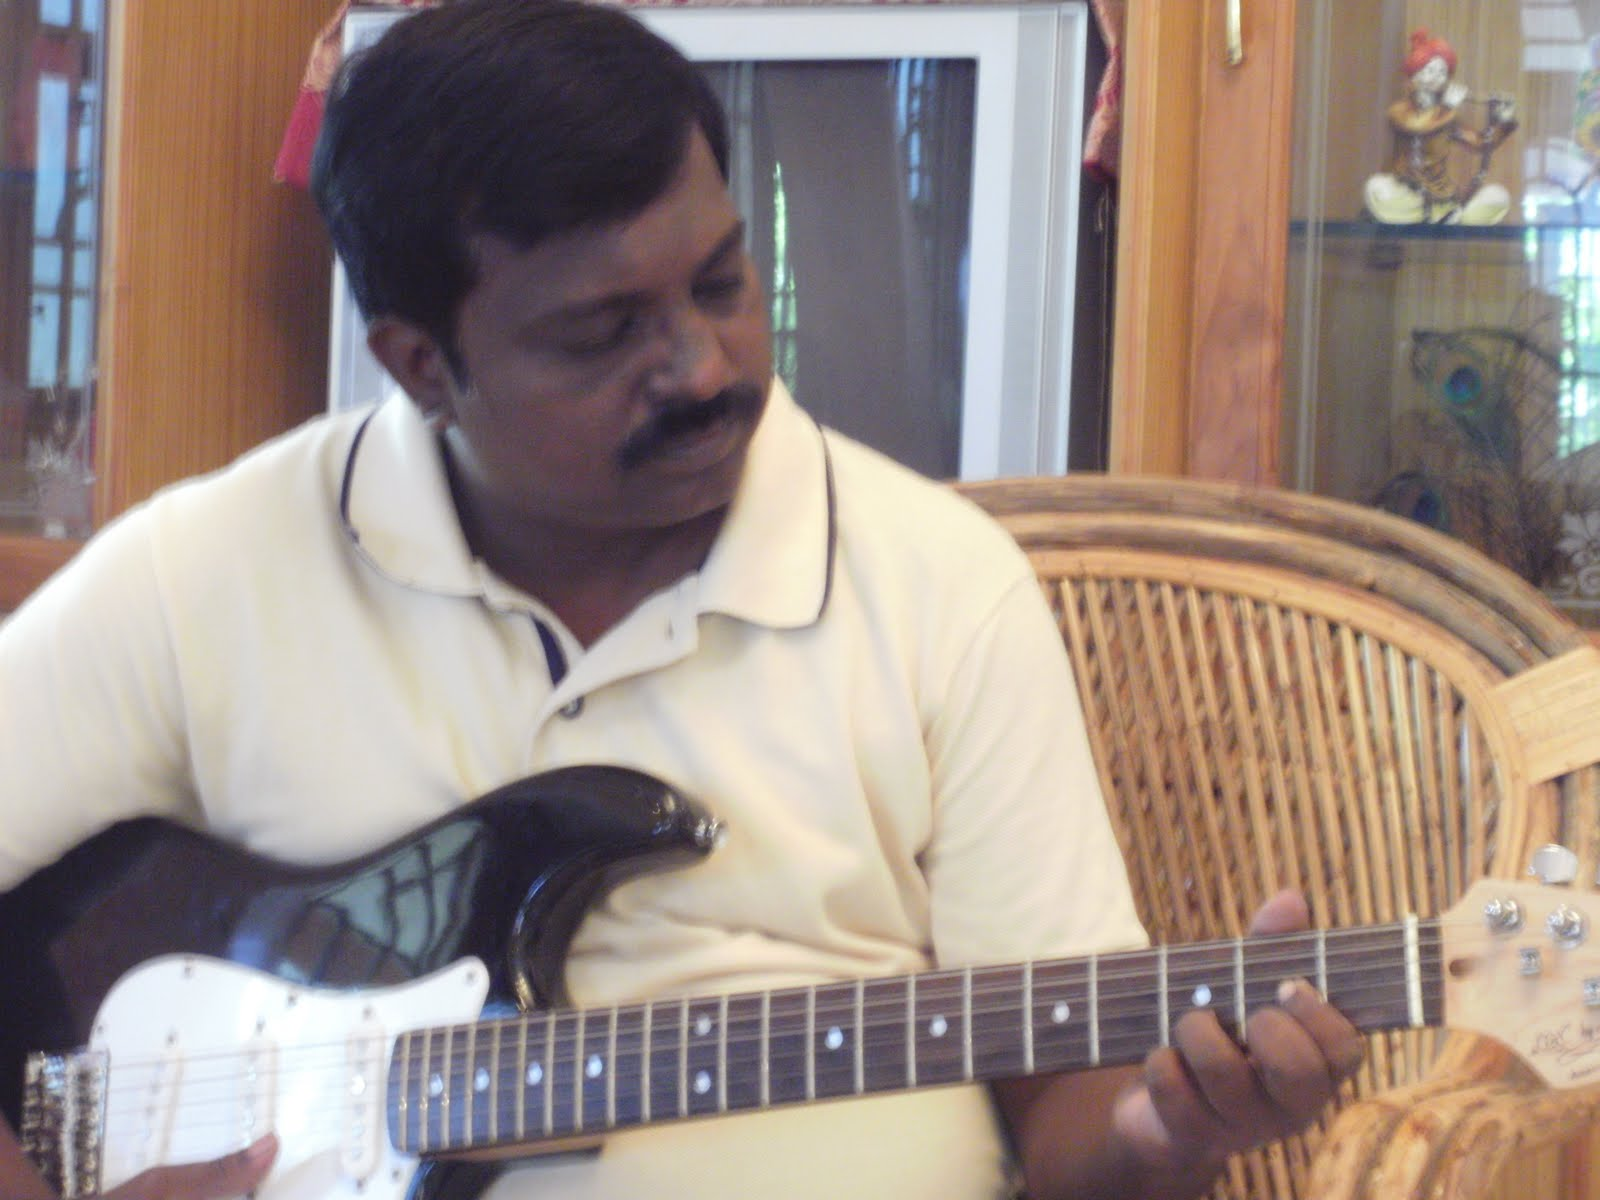 music composer thomas rathnam: composer thomas rathnam